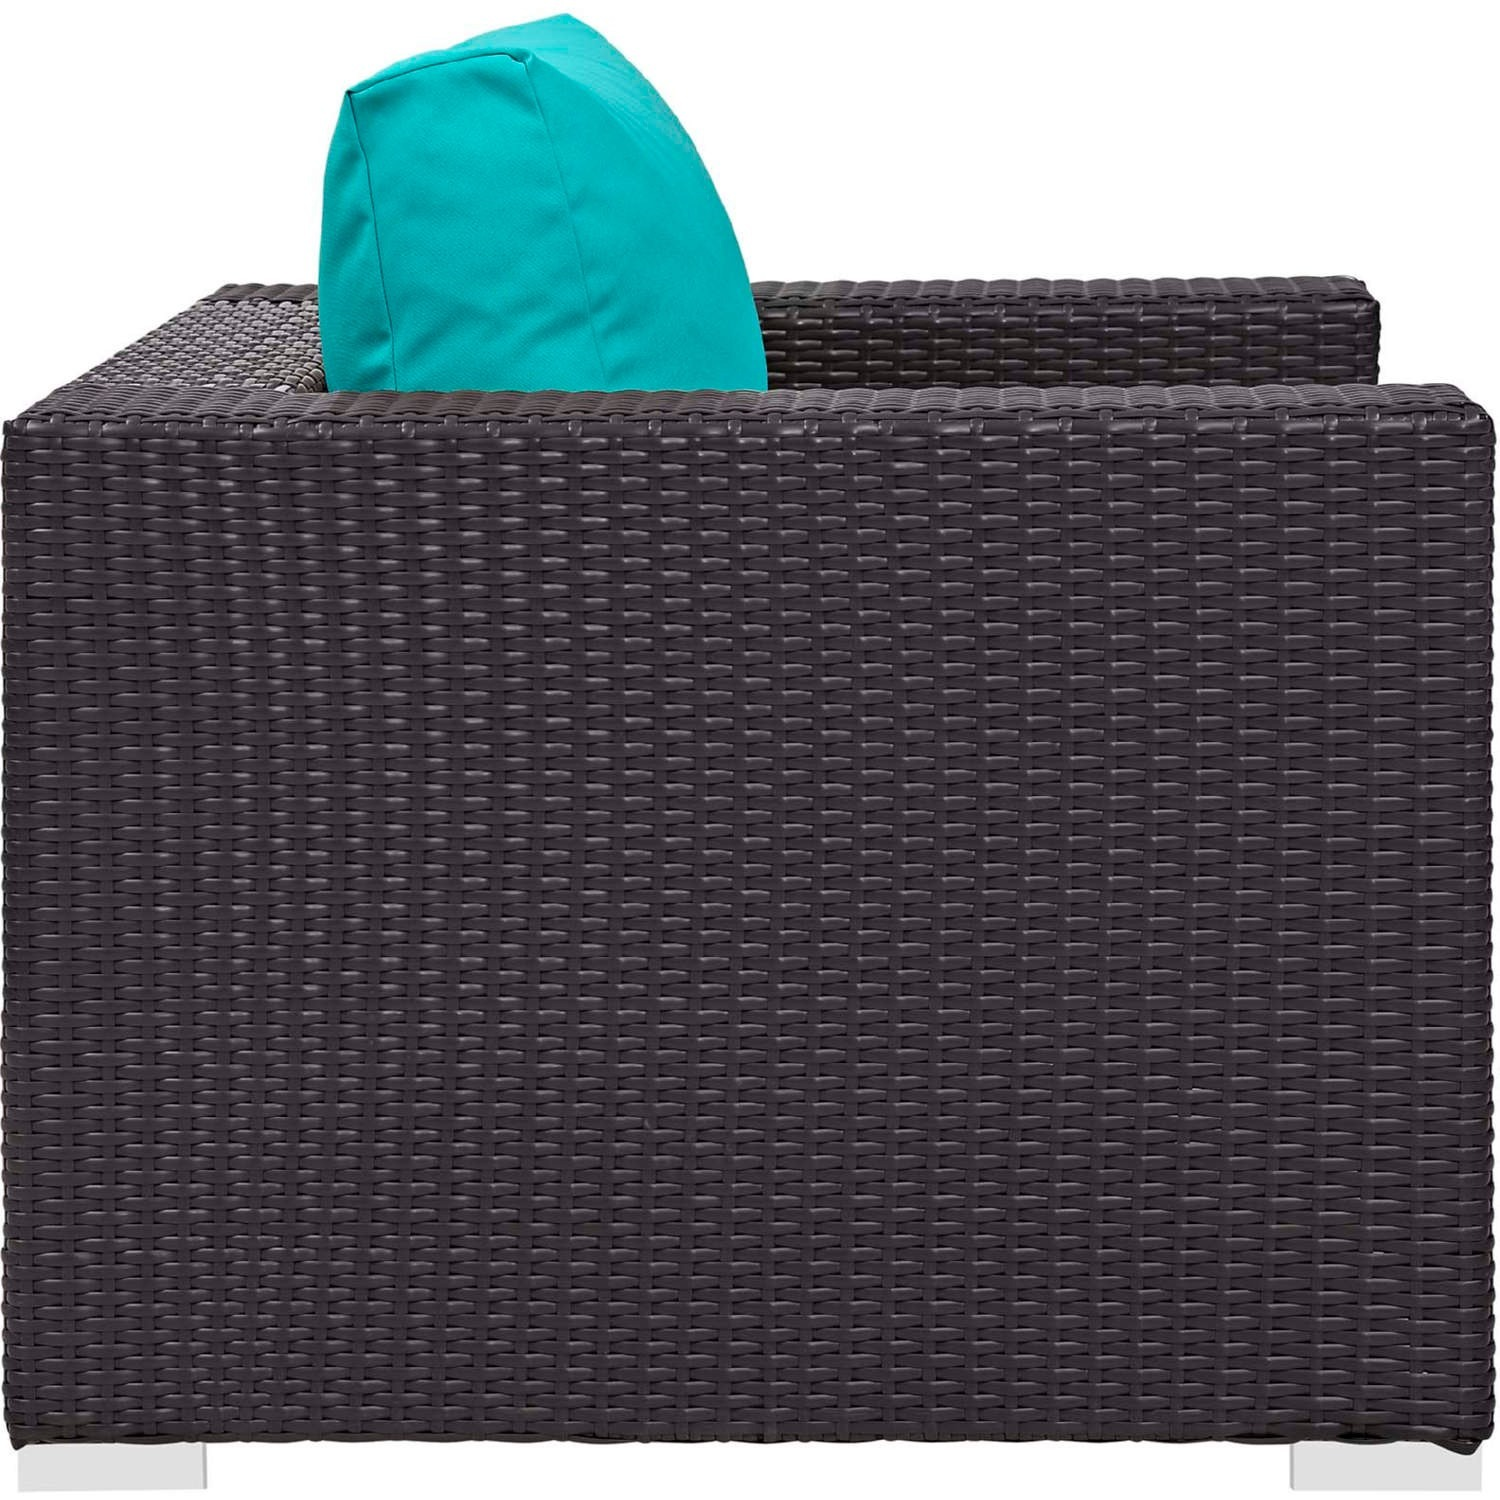 4-Piece Outdoor Sectional In Turquoise W/ Fire Pit - image-3